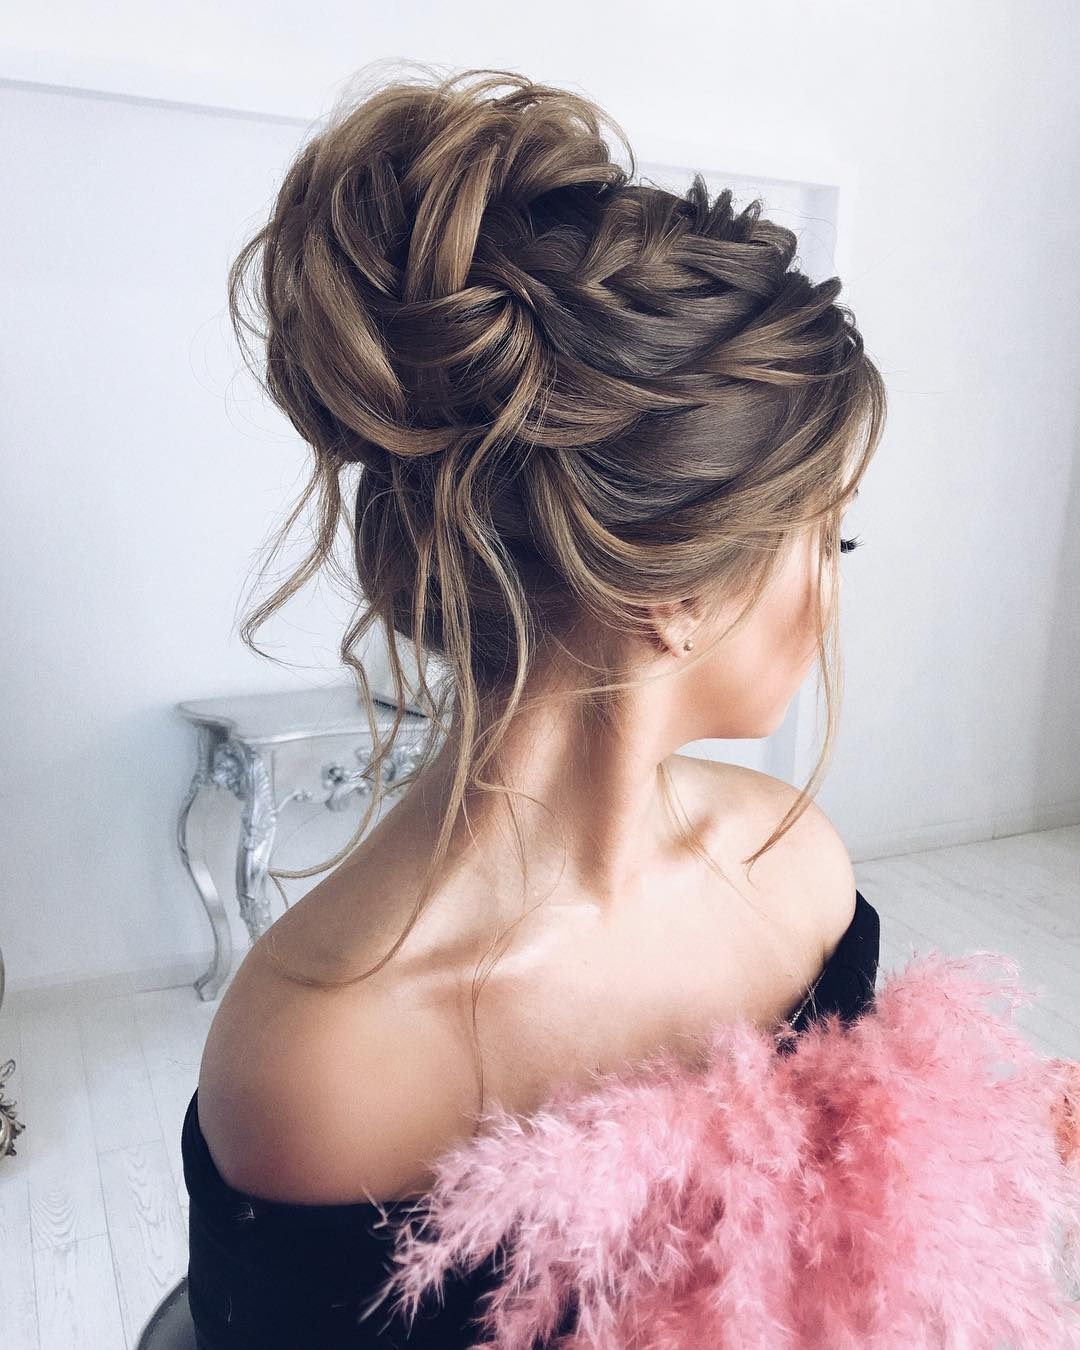 Hairstyles Up 6 Insanely Pretty Half Up Half Down Hairstyles